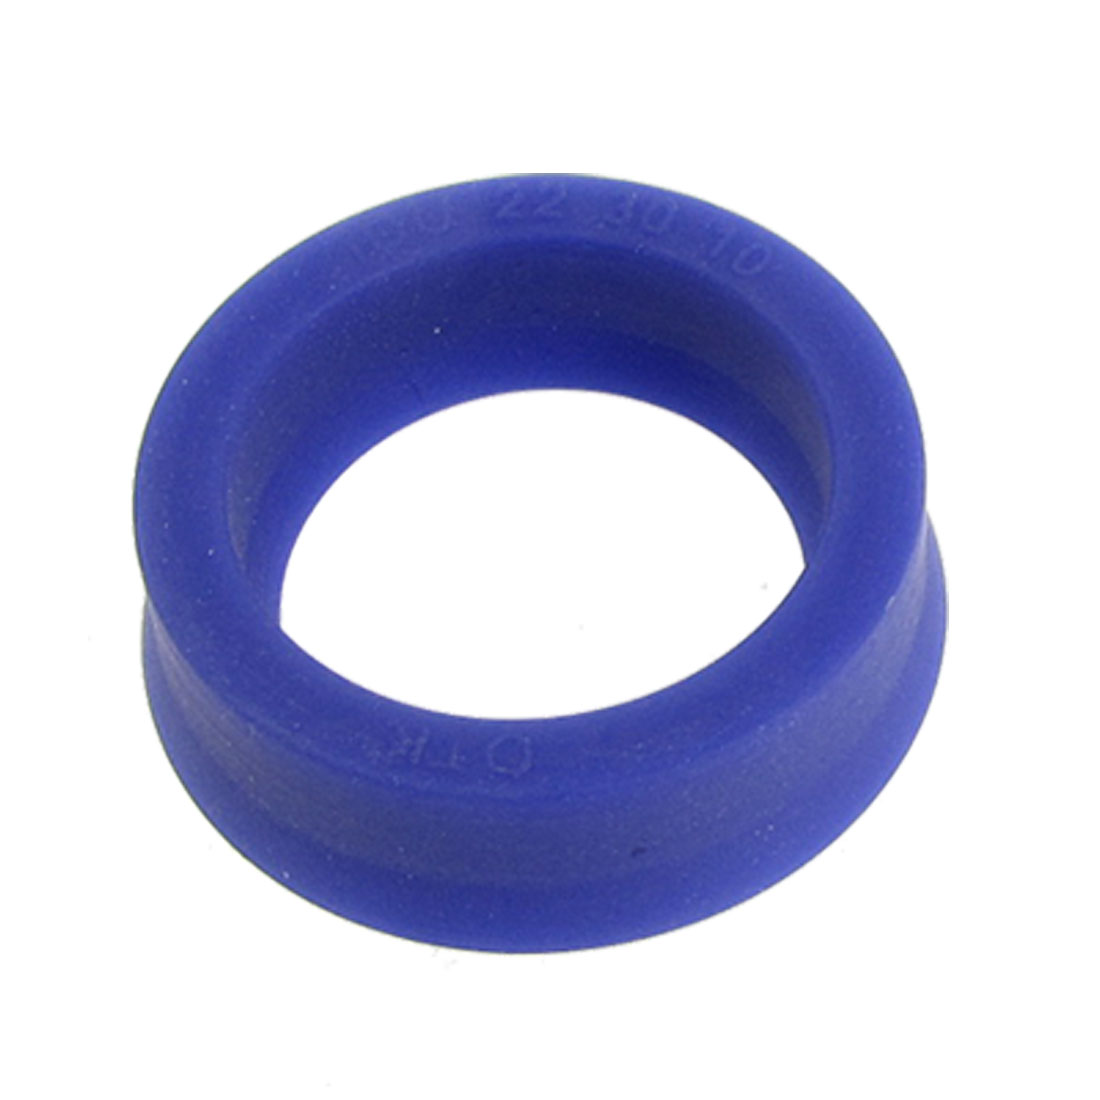 22mm x 30mm x 10mm Polyurethane PU Piston Rod Oil Seal IDU